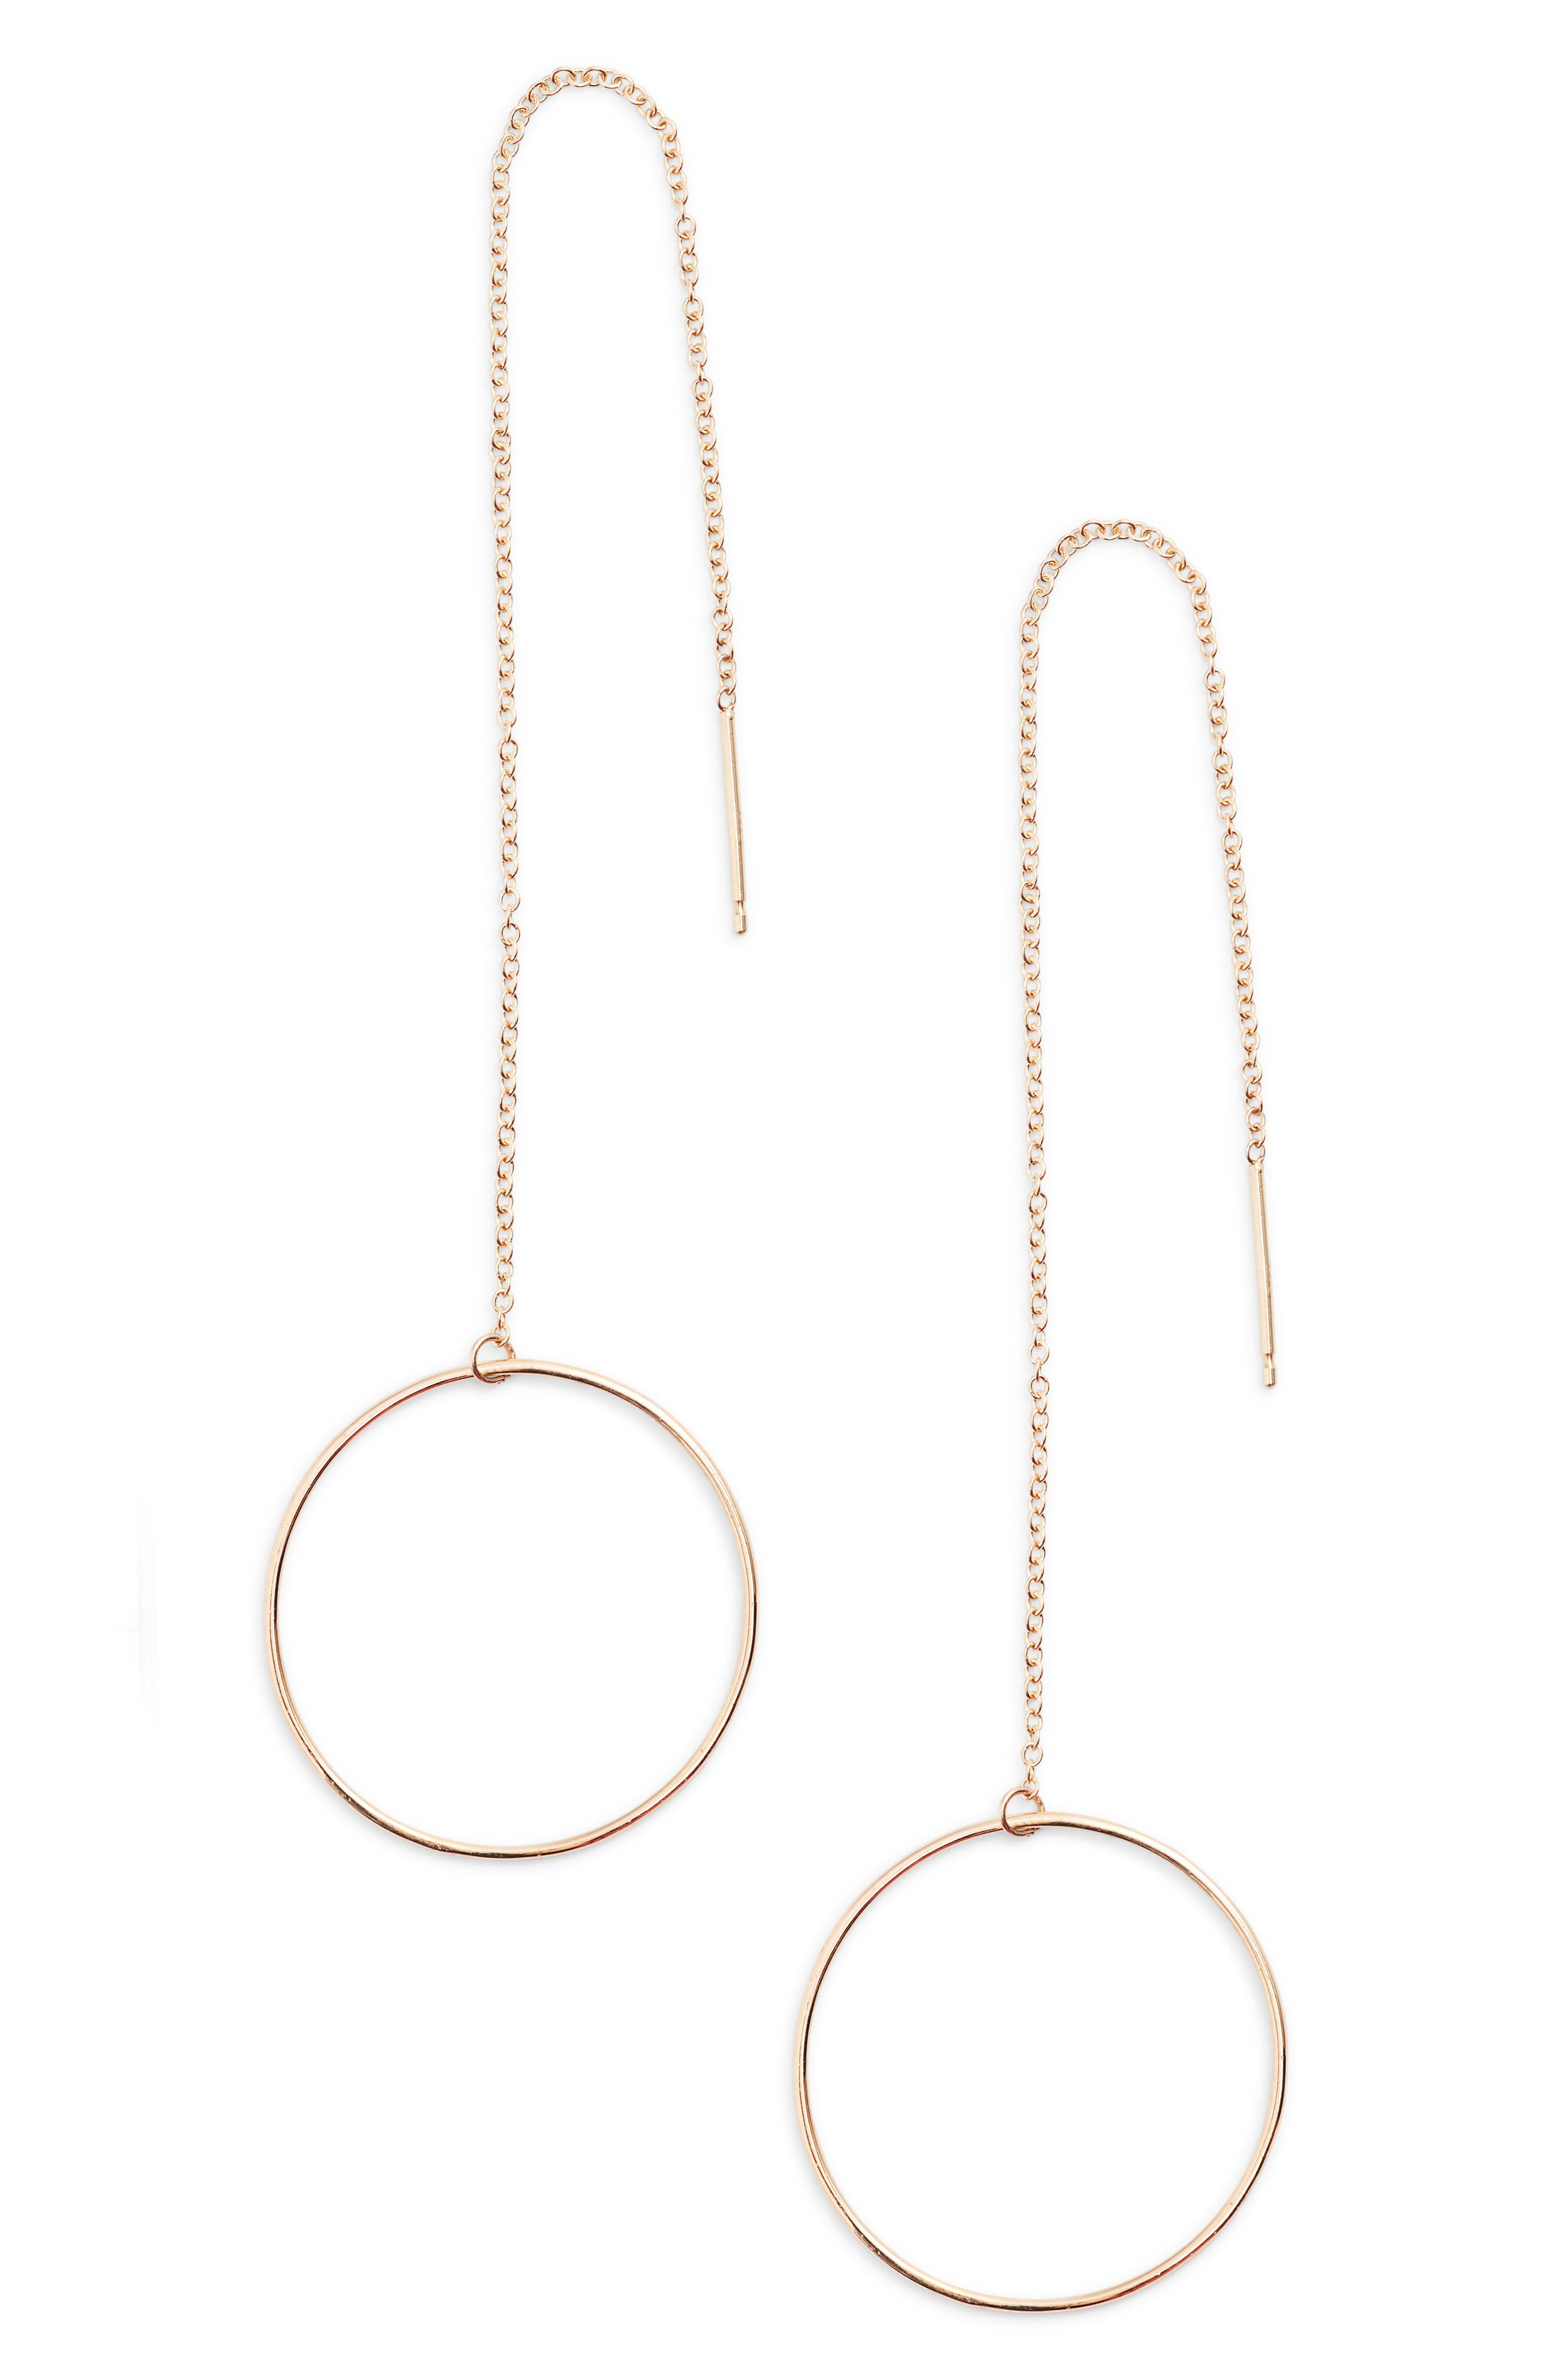 Zoe Chicco Open Circle Threader Earrings